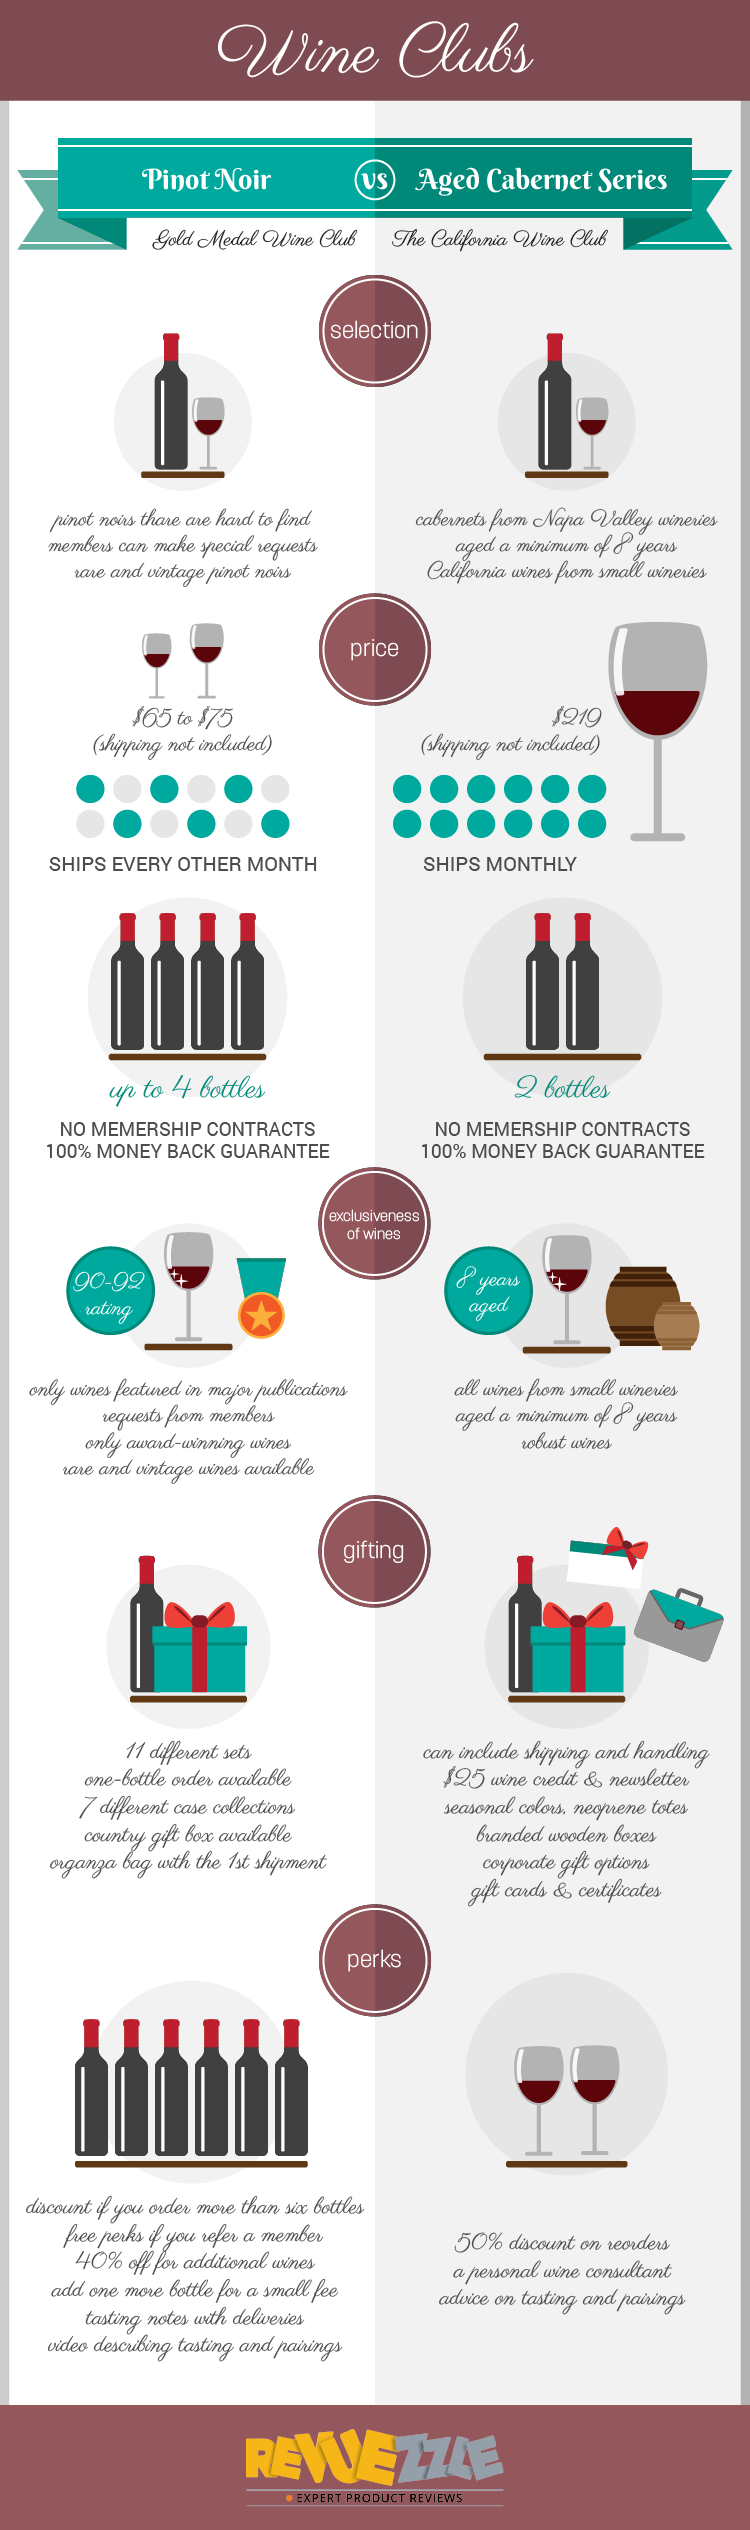 The California Wine Club's Aged Cabernet Series vs. Gold Medal Wine Club's Pinot Noir Club  Detailed one on one comparisions. #wine #vino #wineclubs #pinotnoir #cabernet  #infographic